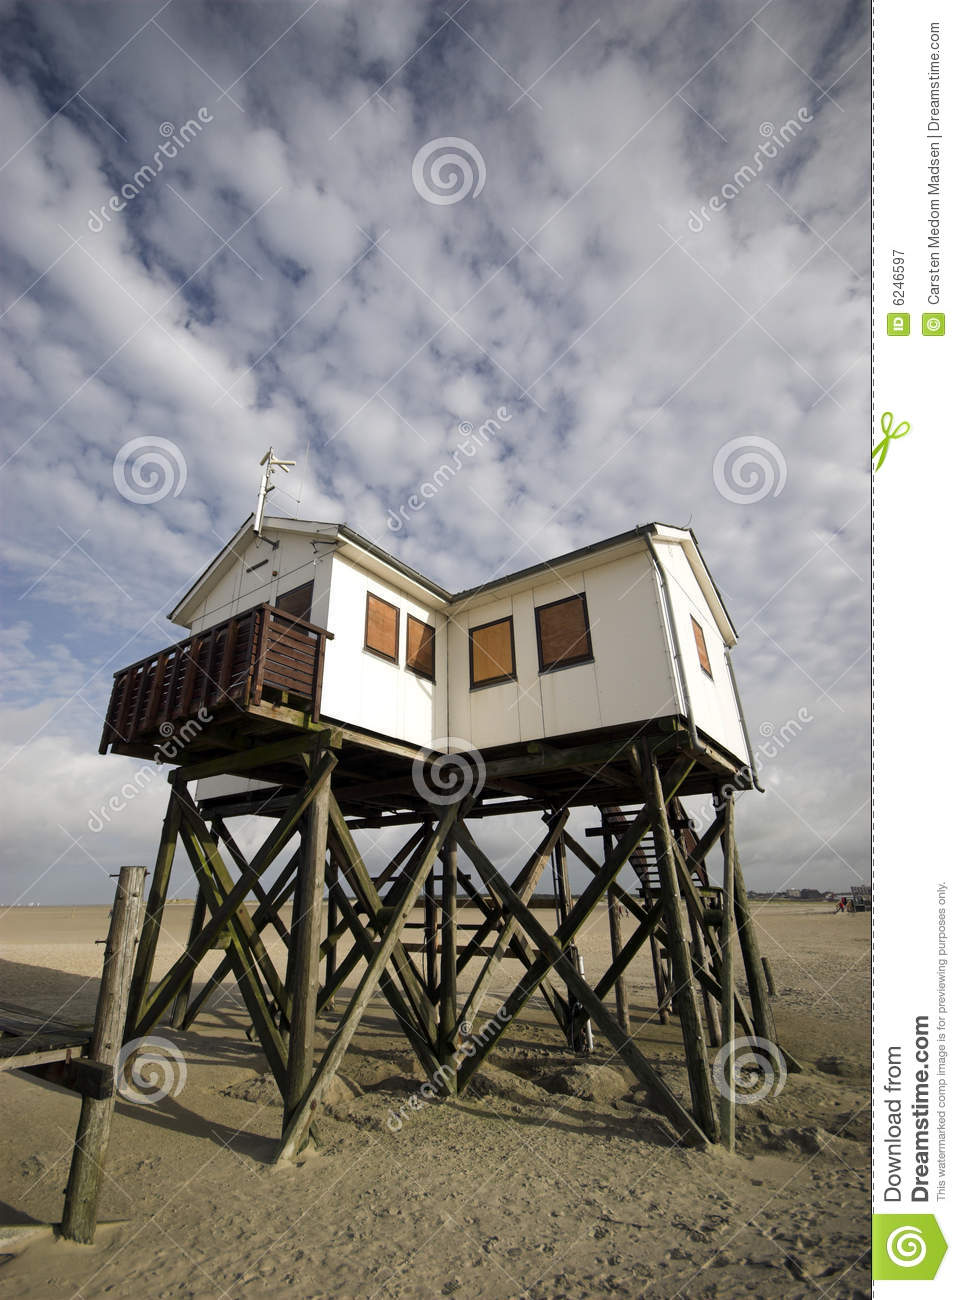 Wooden House On Stilts oyalty Free Stock Photography - Image: 6246597 - ^